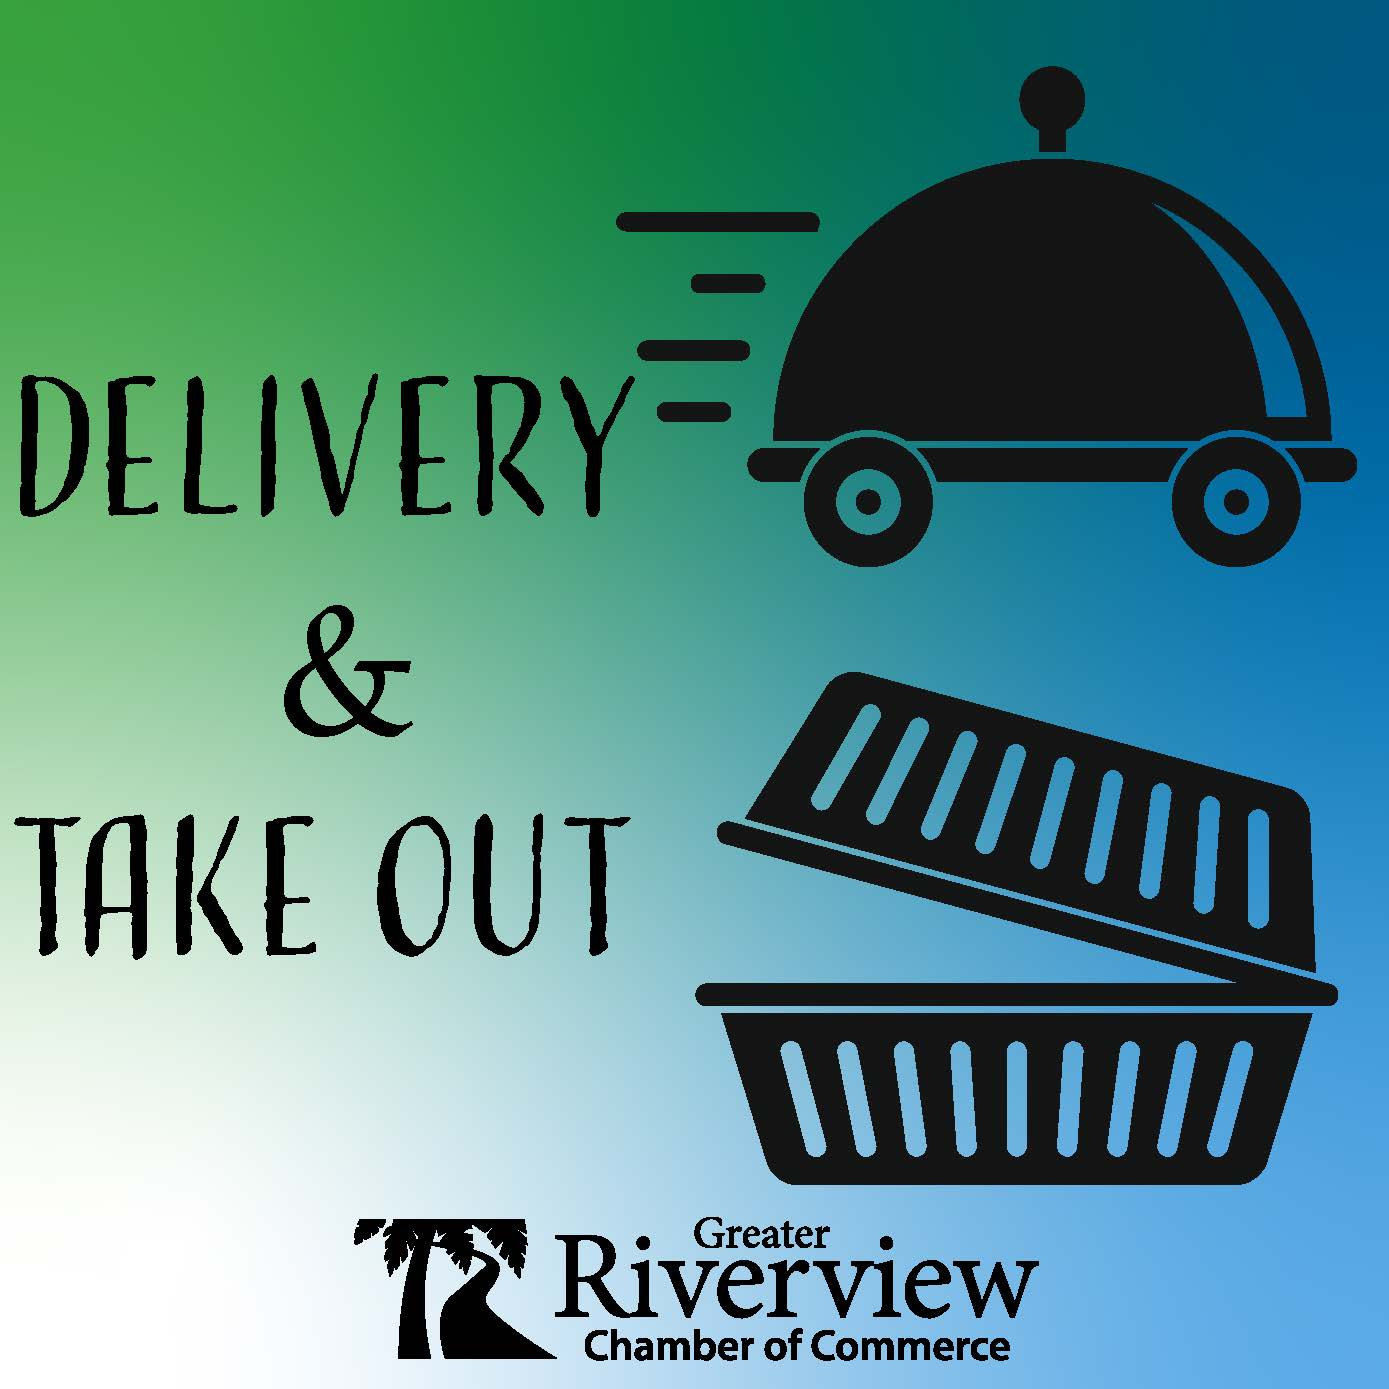 delivery-icon.jpg